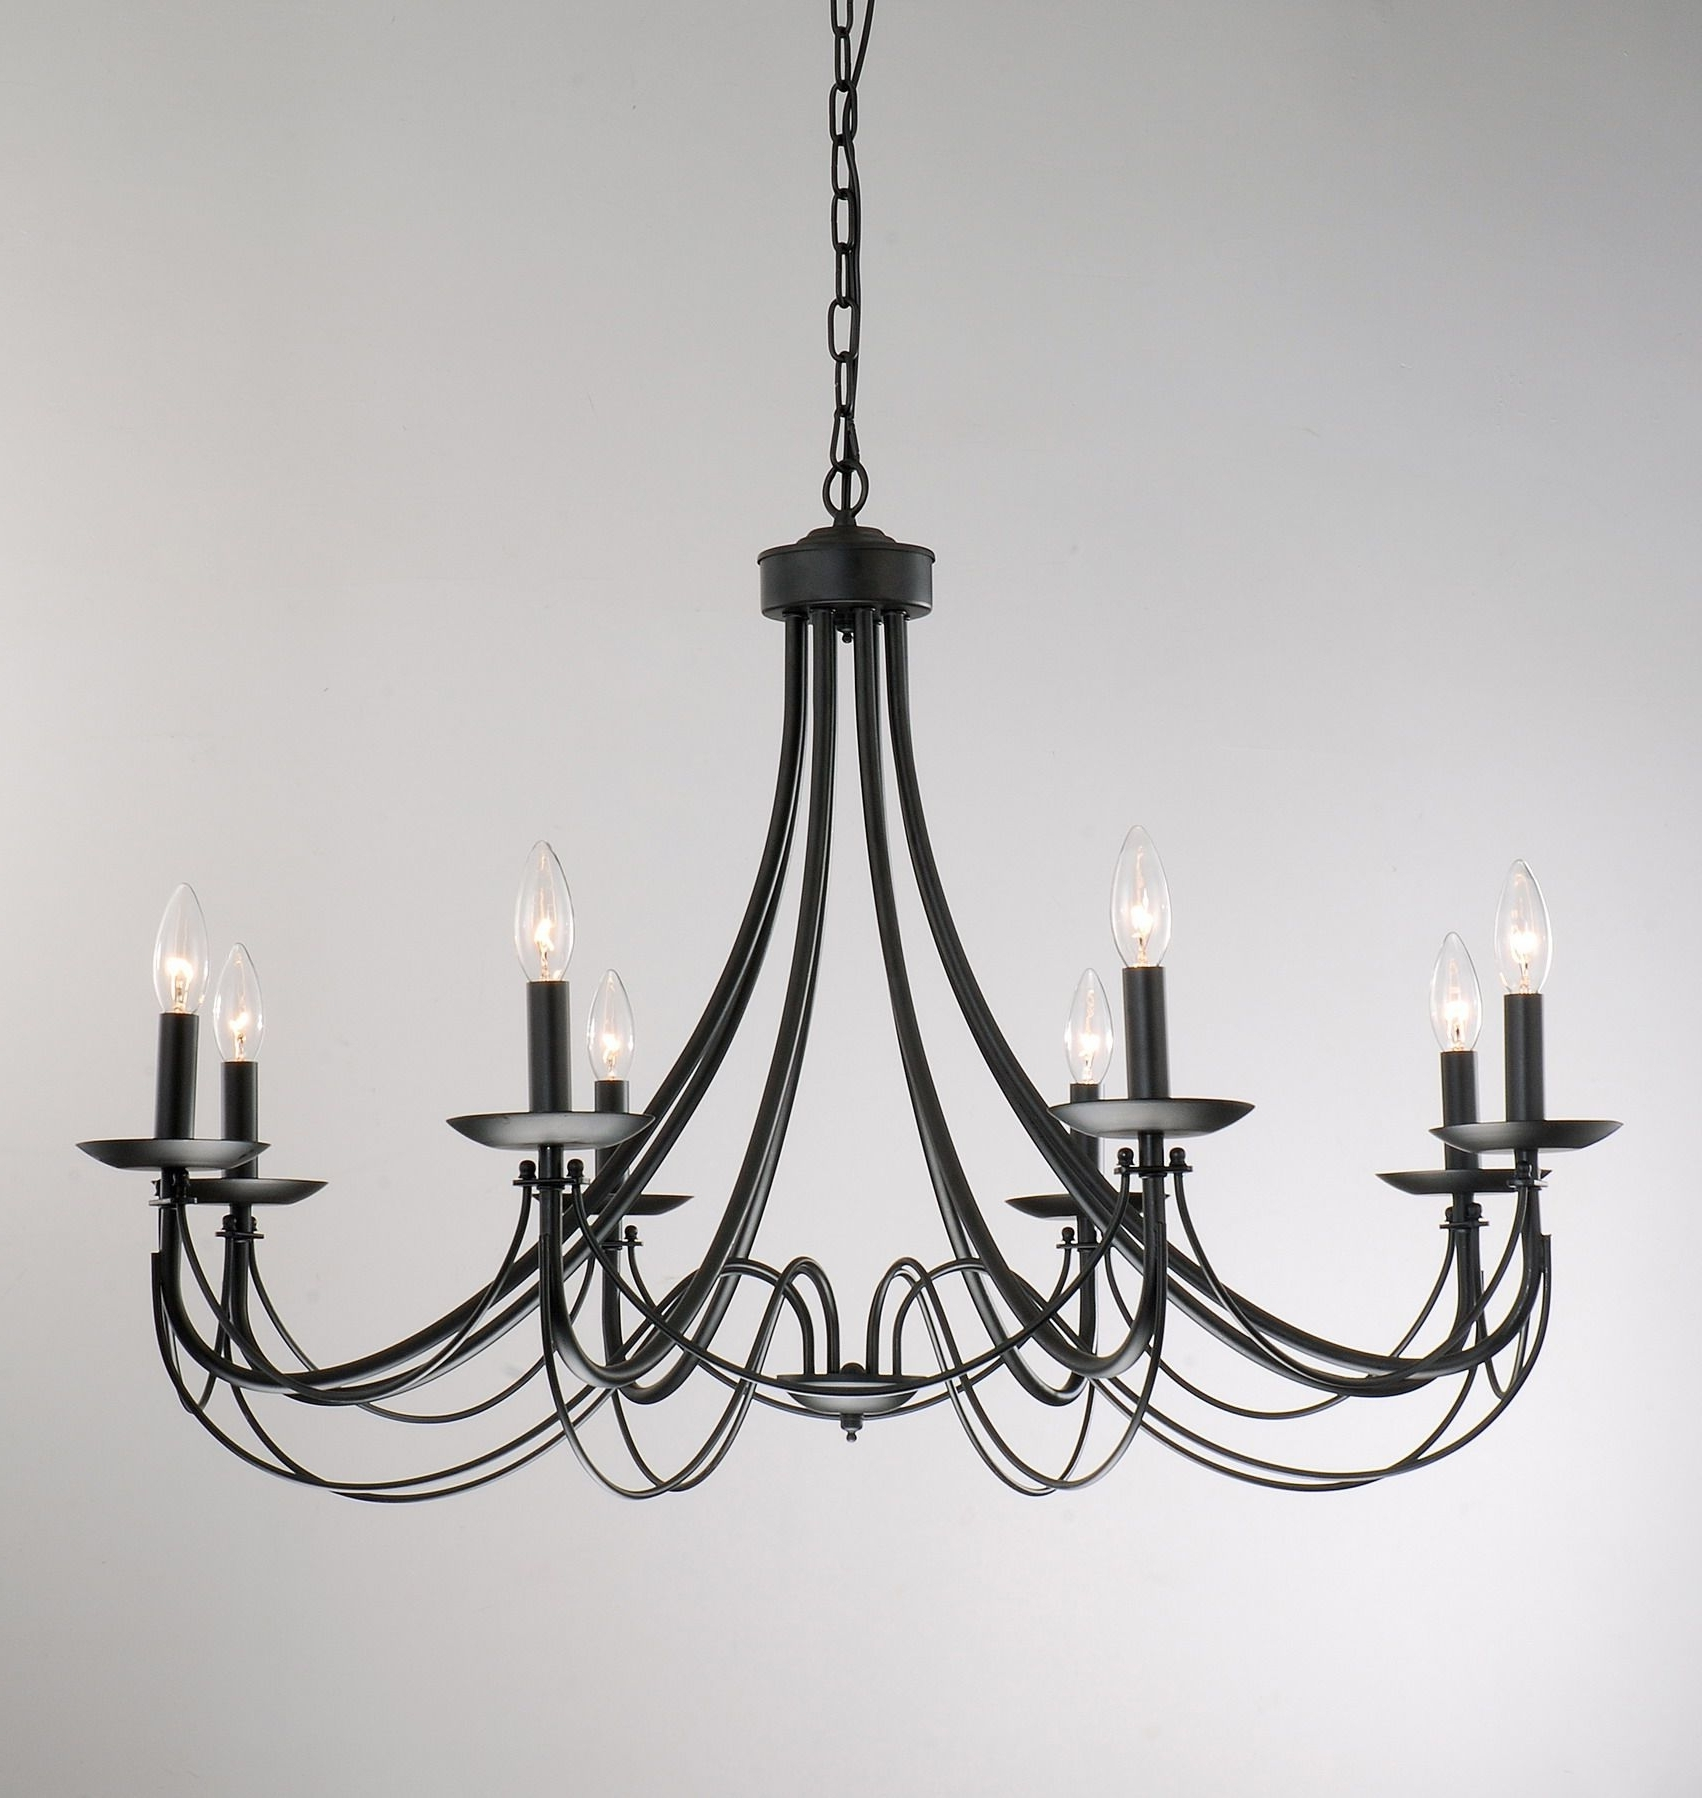 Black Chandelier, Chandeliers And Lights Regarding Black Chandeliers (View 4 of 20)